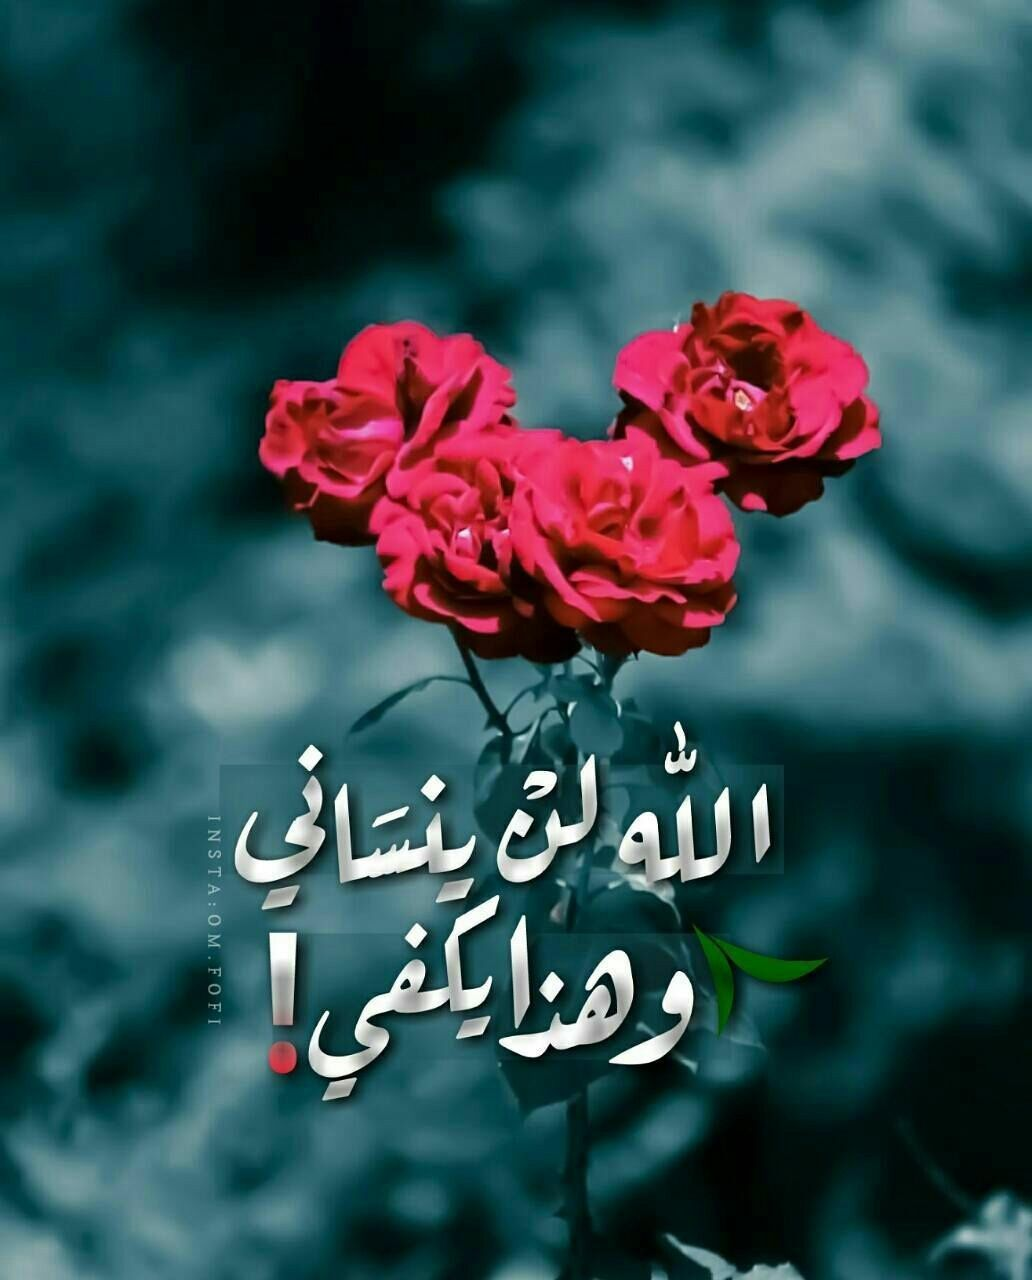 لن ينساني الله وكفى بالله وكيلا Arabic Quotes Love Quotes Wallpaper Beautiful Arabic Words